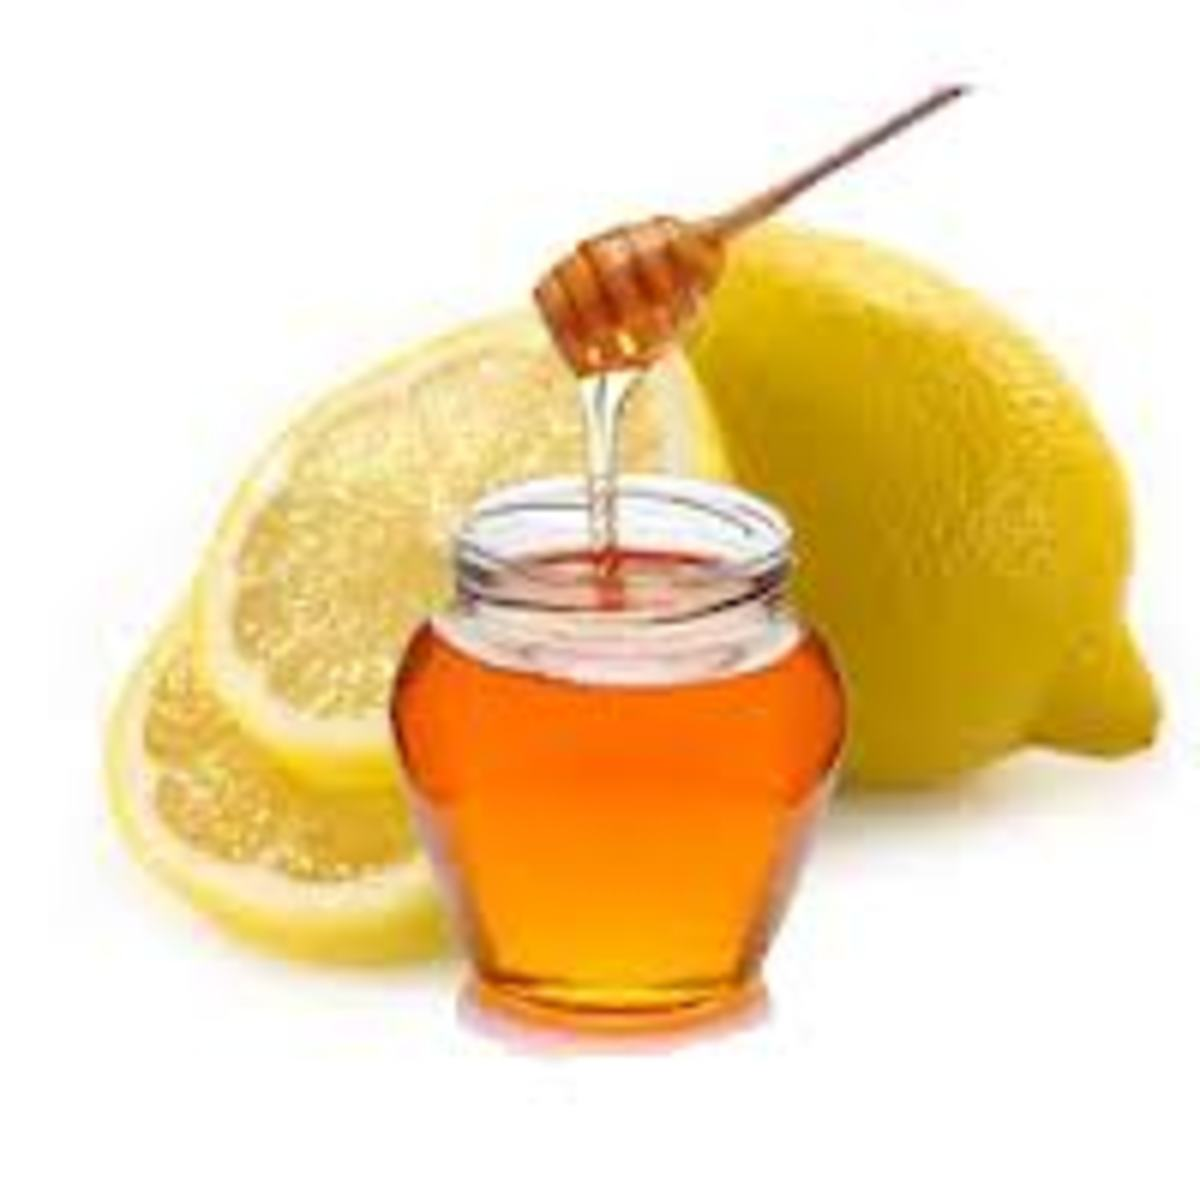 lemon and honey works best for underarms whitening